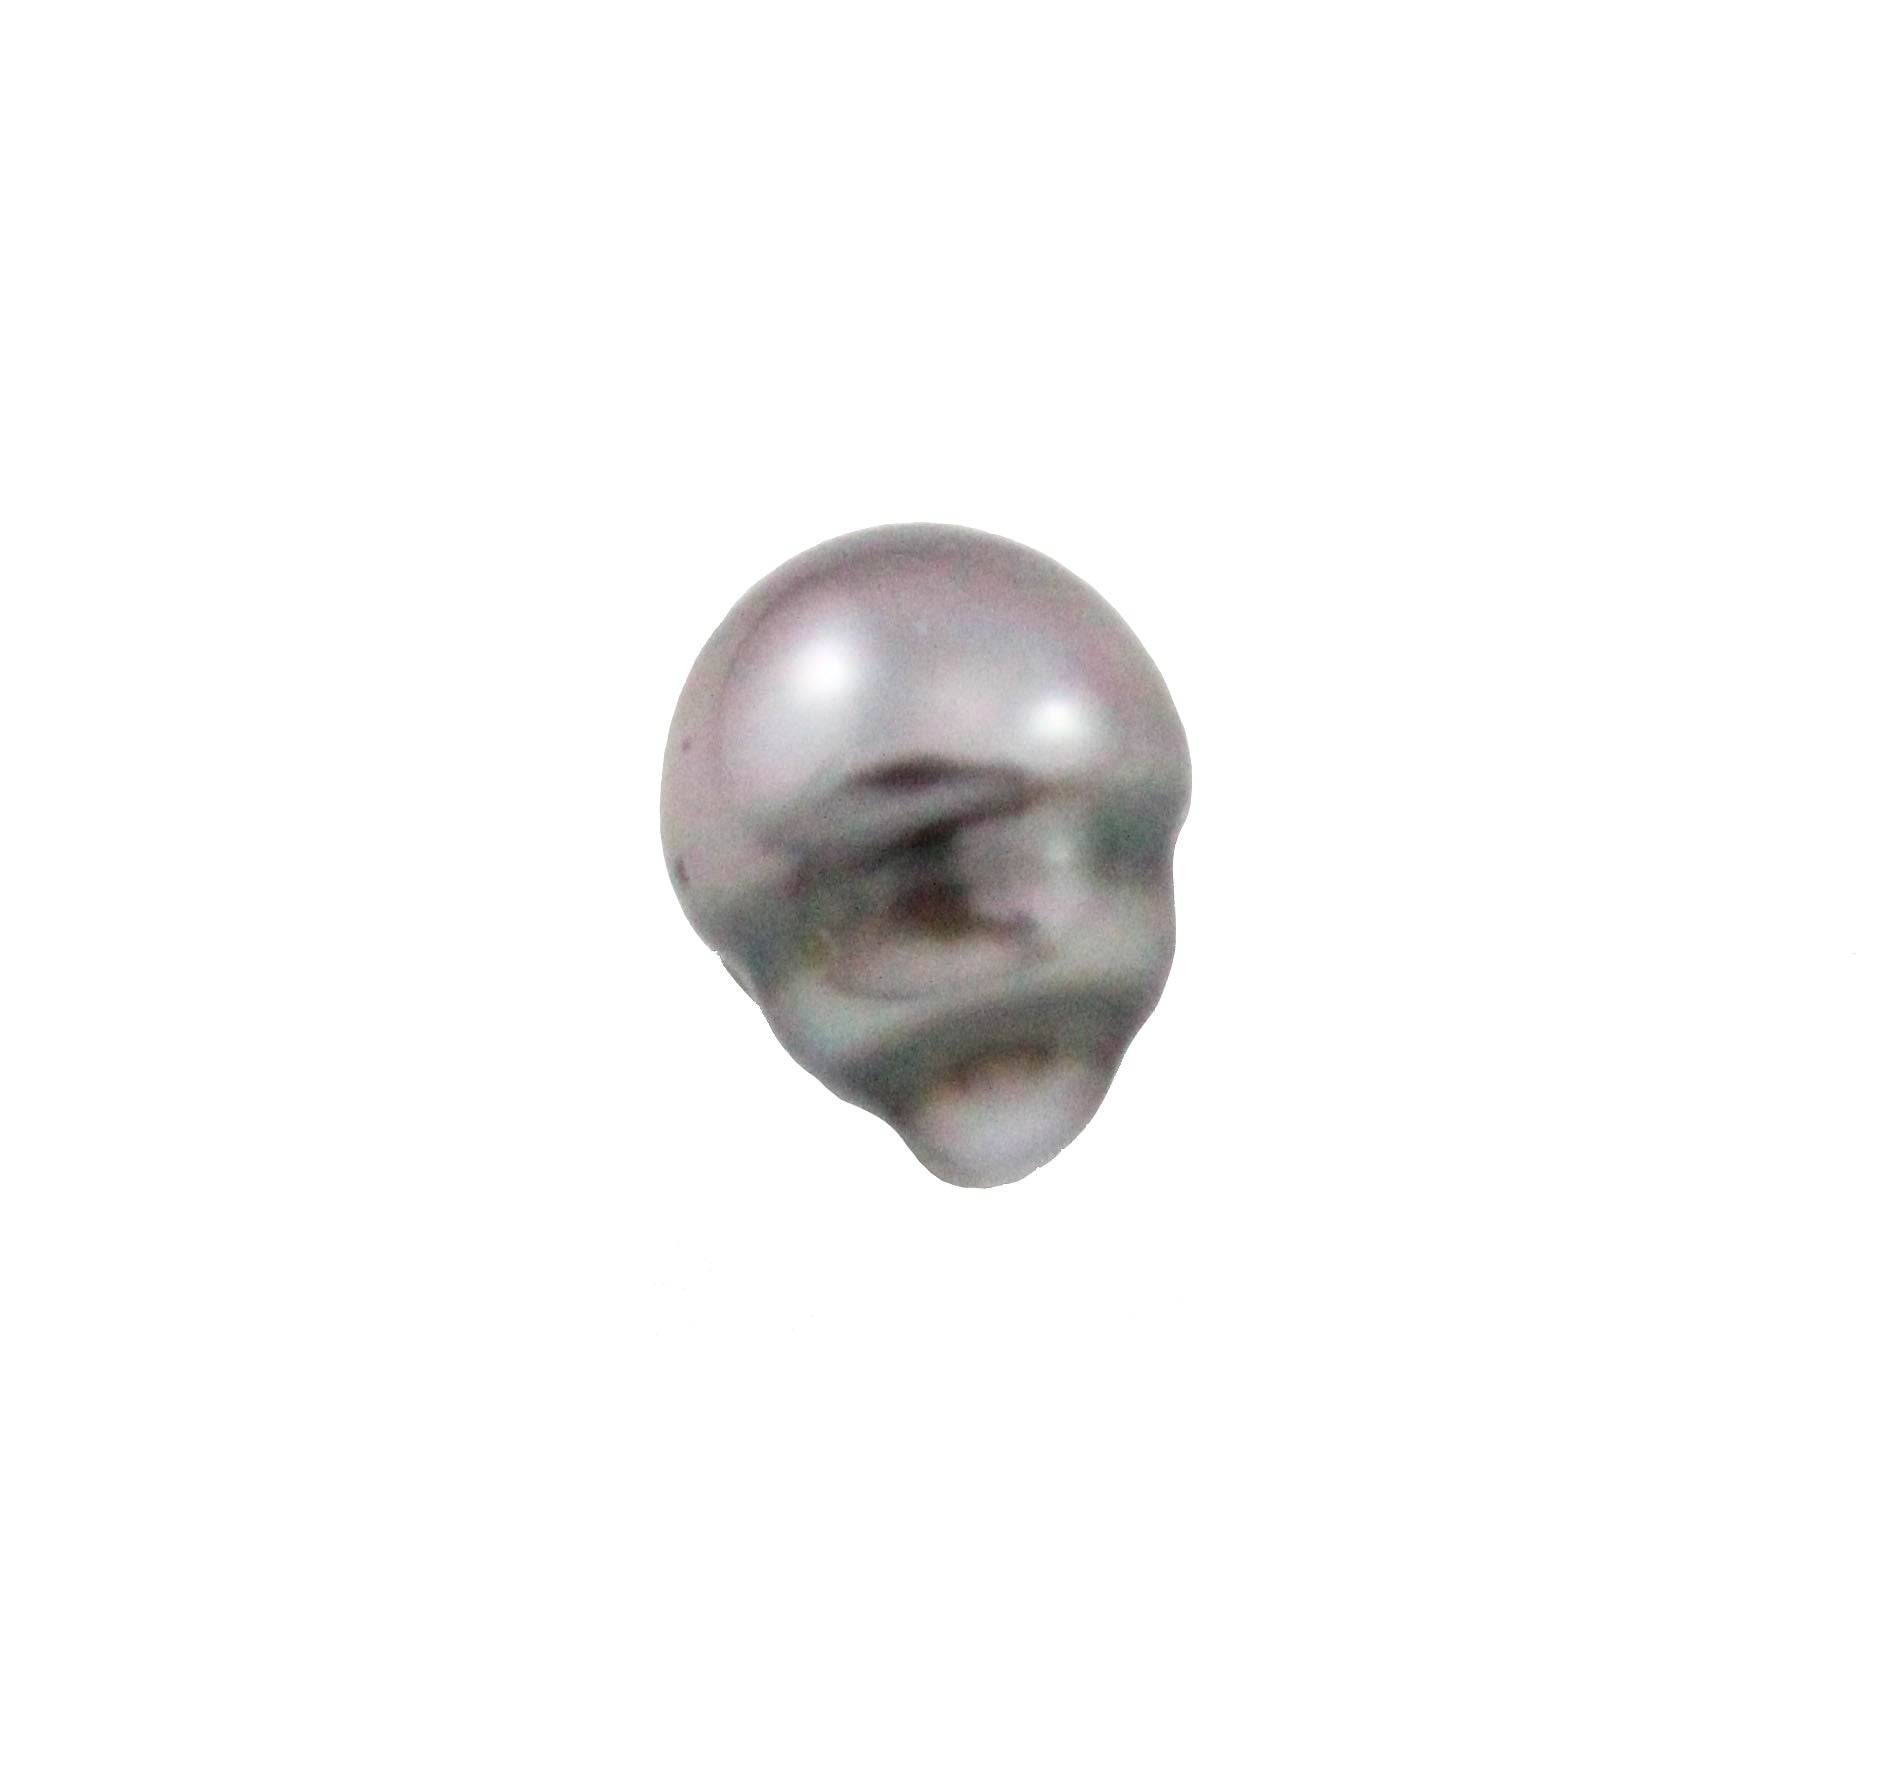 Tahitian pearl undrilled 1.00gr mm 10.8x8.3mm - Purchase only with custom order - Sarah Hughes - 6